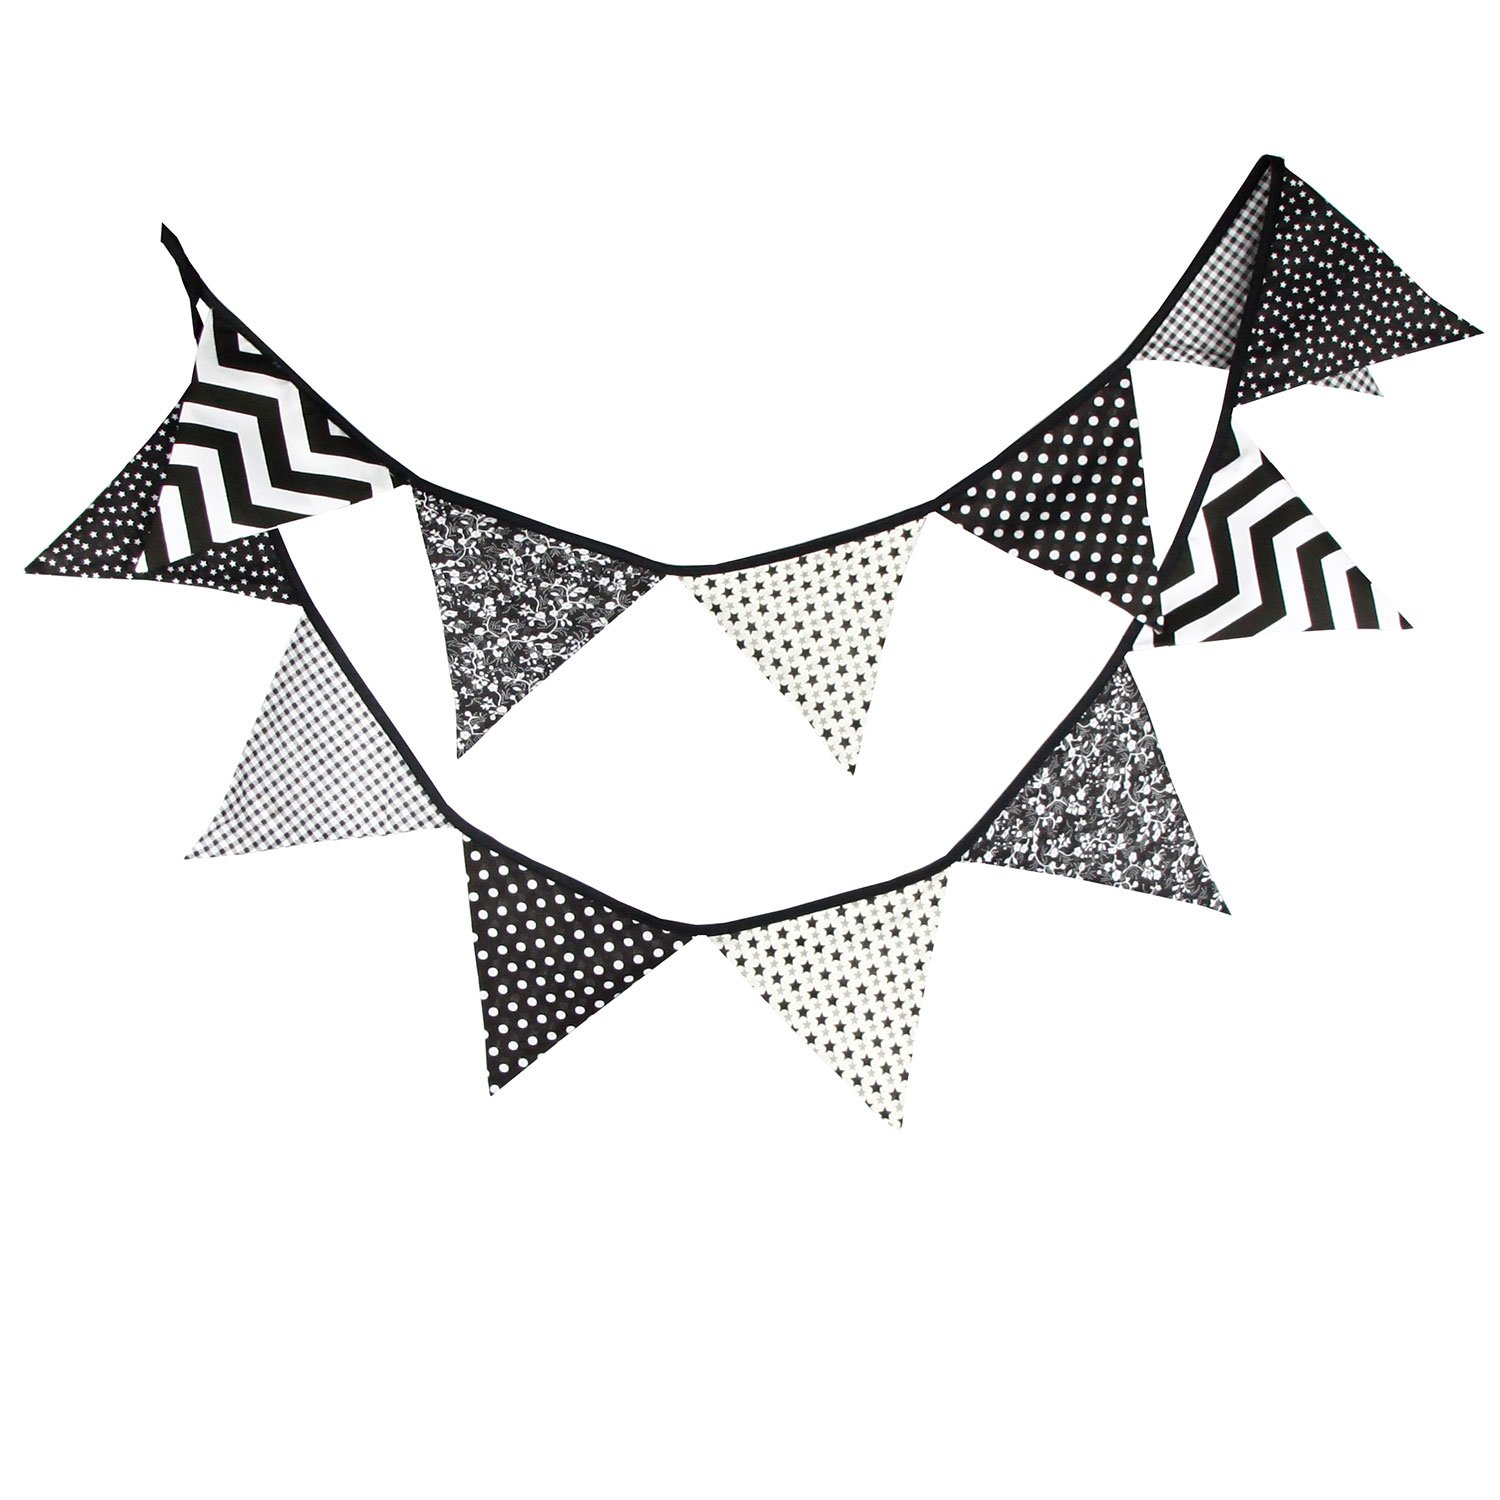 10.5 Feet Double Sided Black and White Cotton Fabric Triangle Pennant Flag  Bunting Banner 12 Flags.